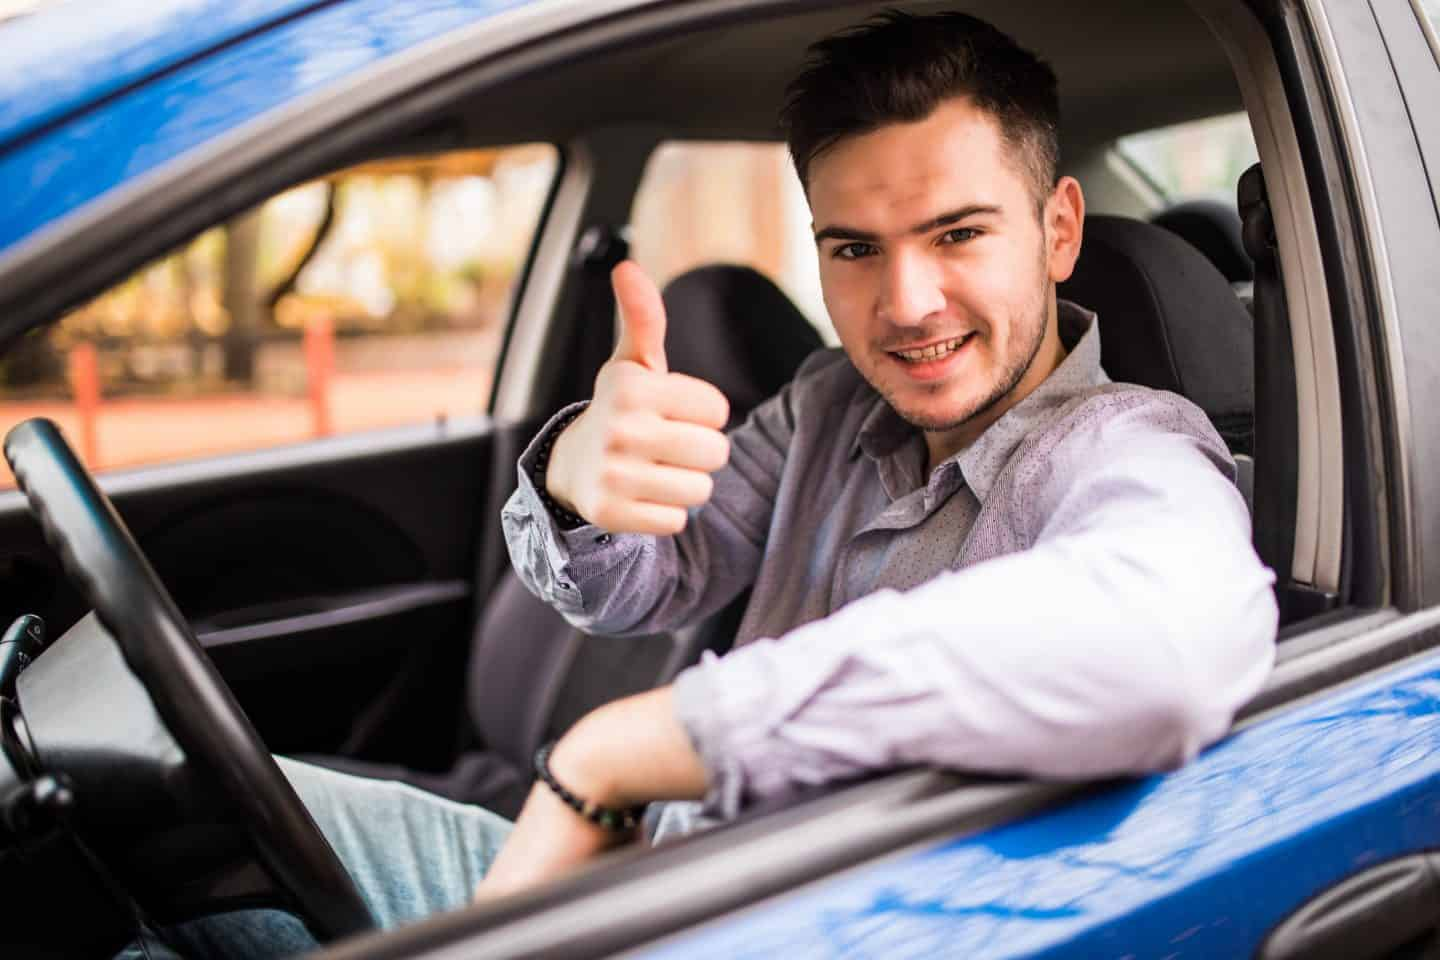 Happy smiling man sitting inside car showing thumbs up. Handsome